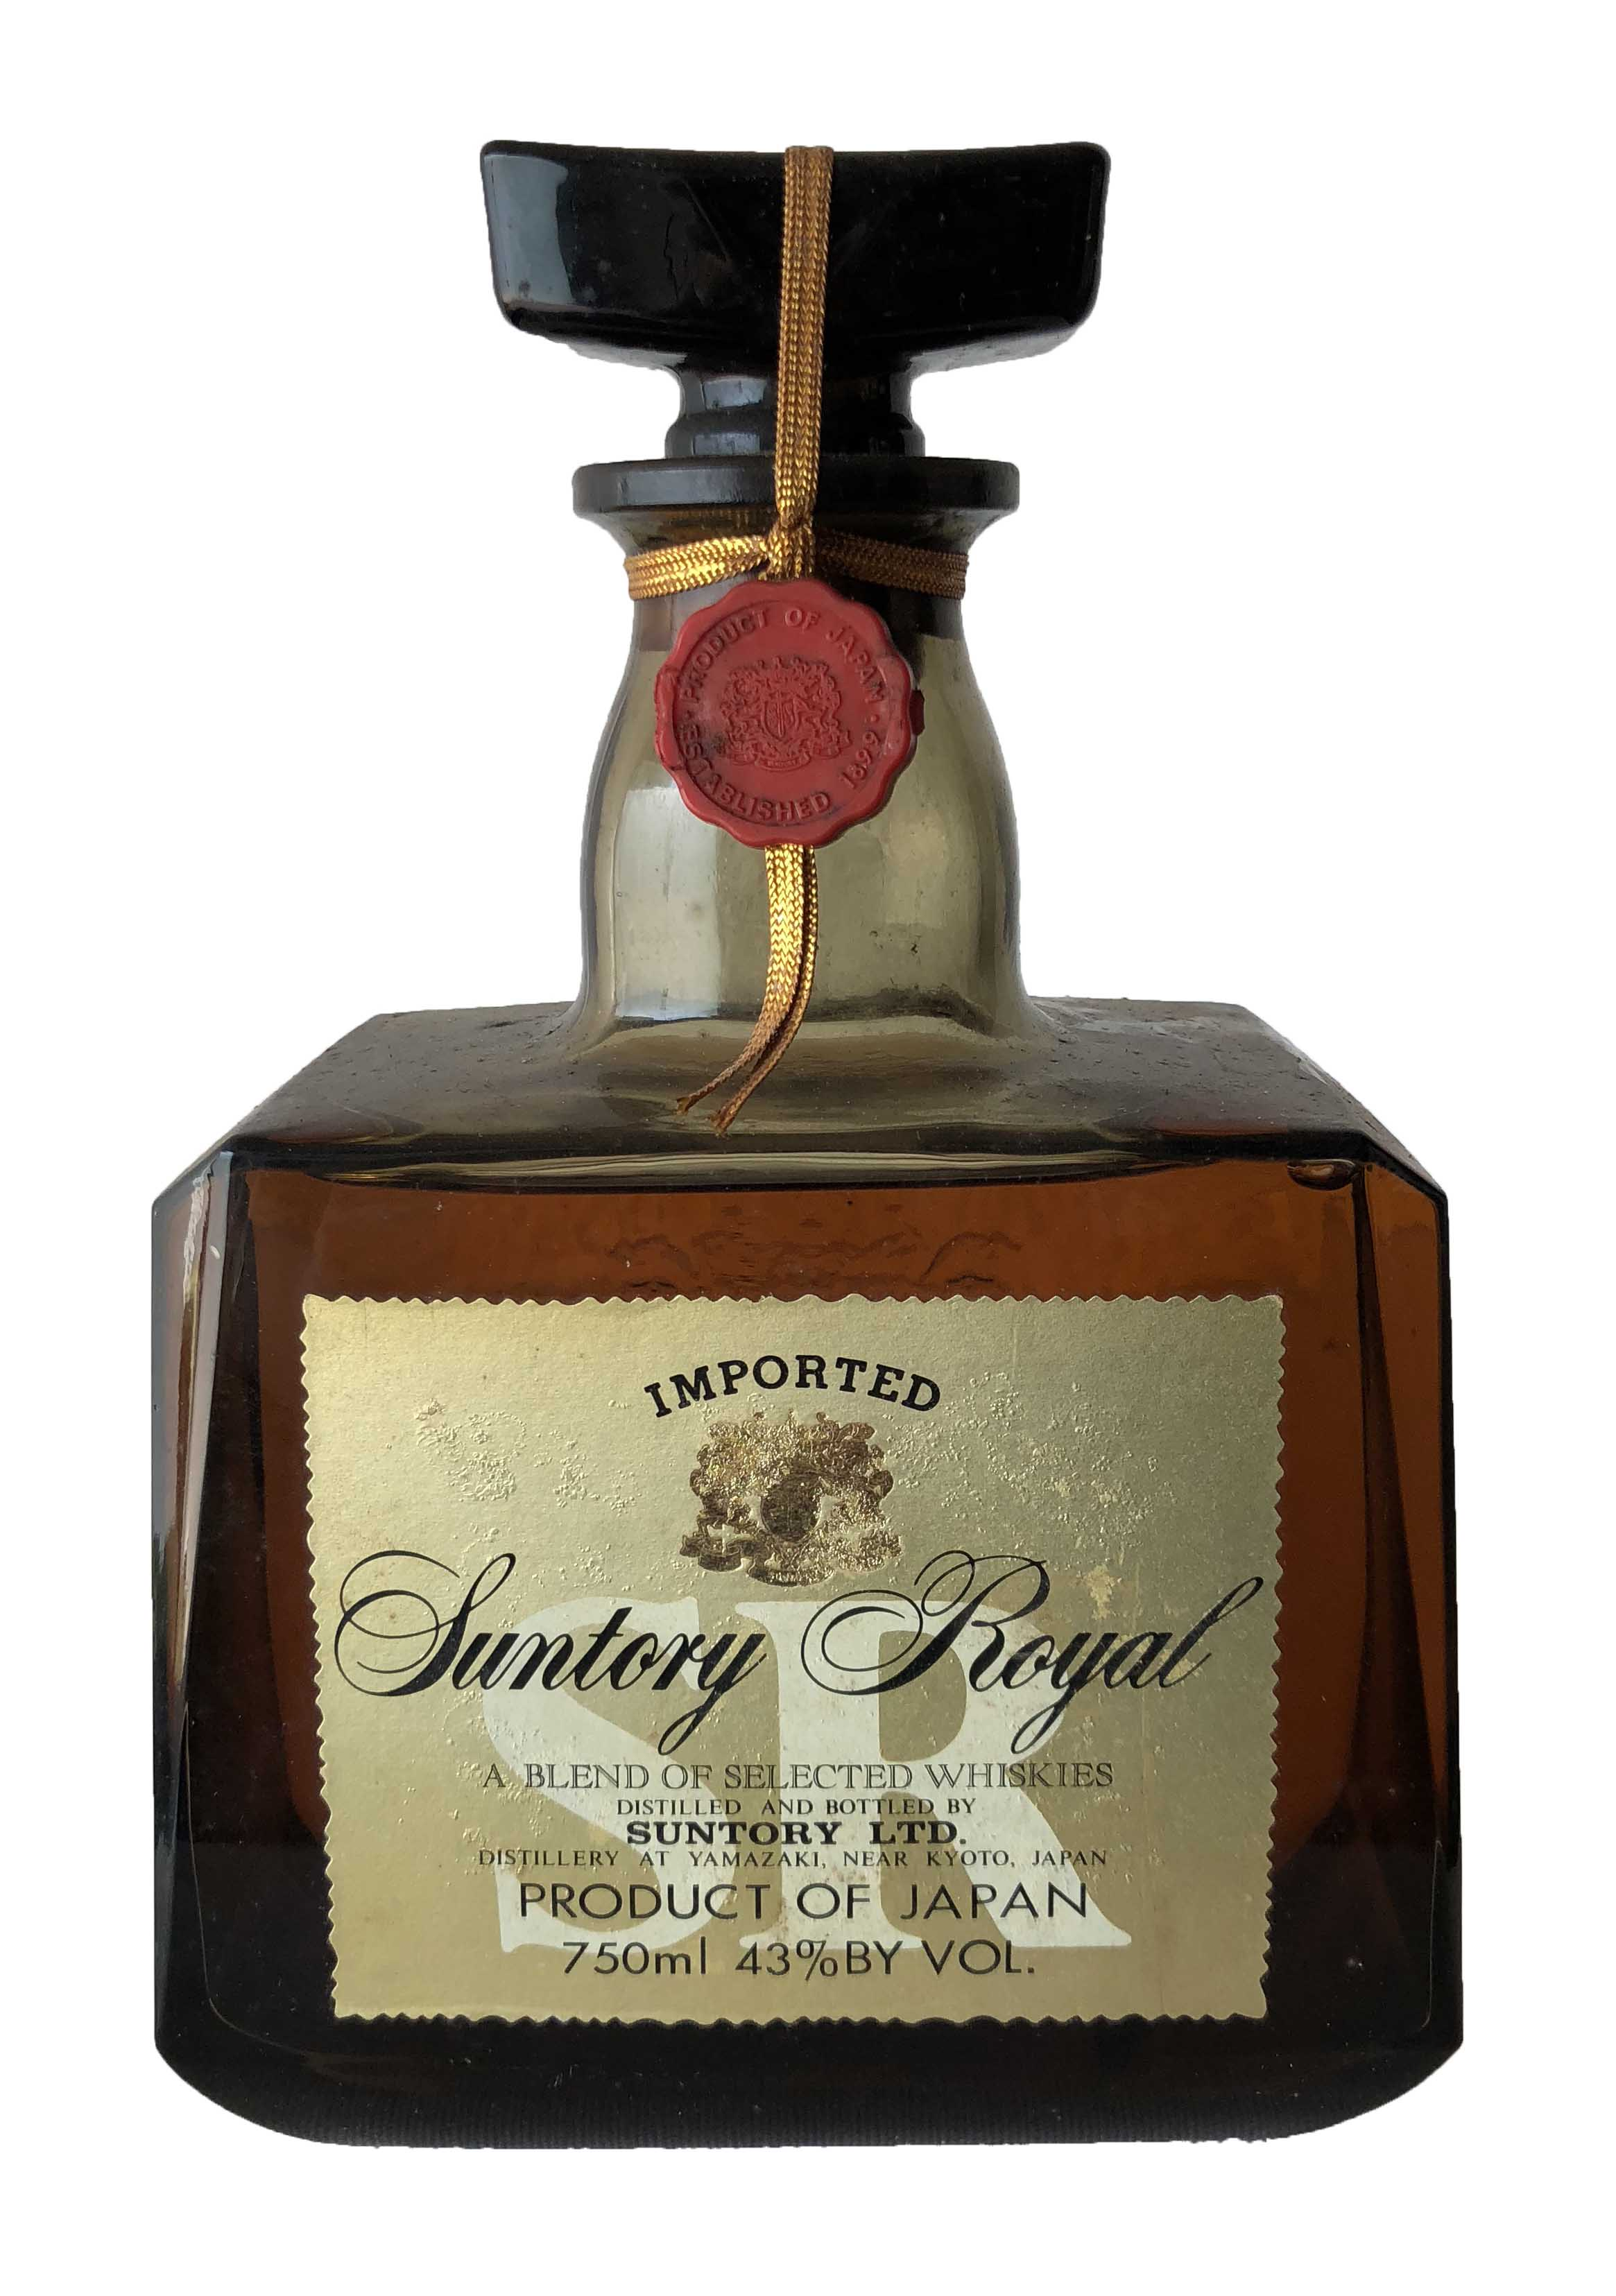 Suntory Royal SR A Blend of Selected Whiskies